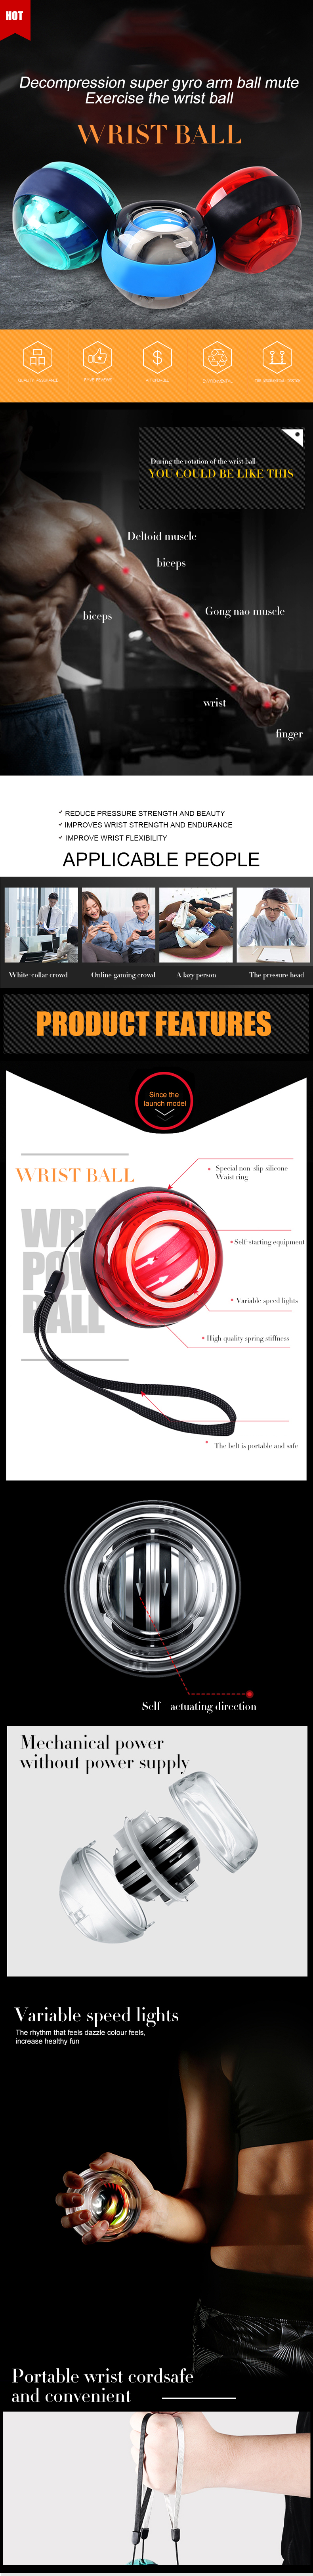 Handgelenk Trainer Power Gyro Exerciser gyroskop air power ball